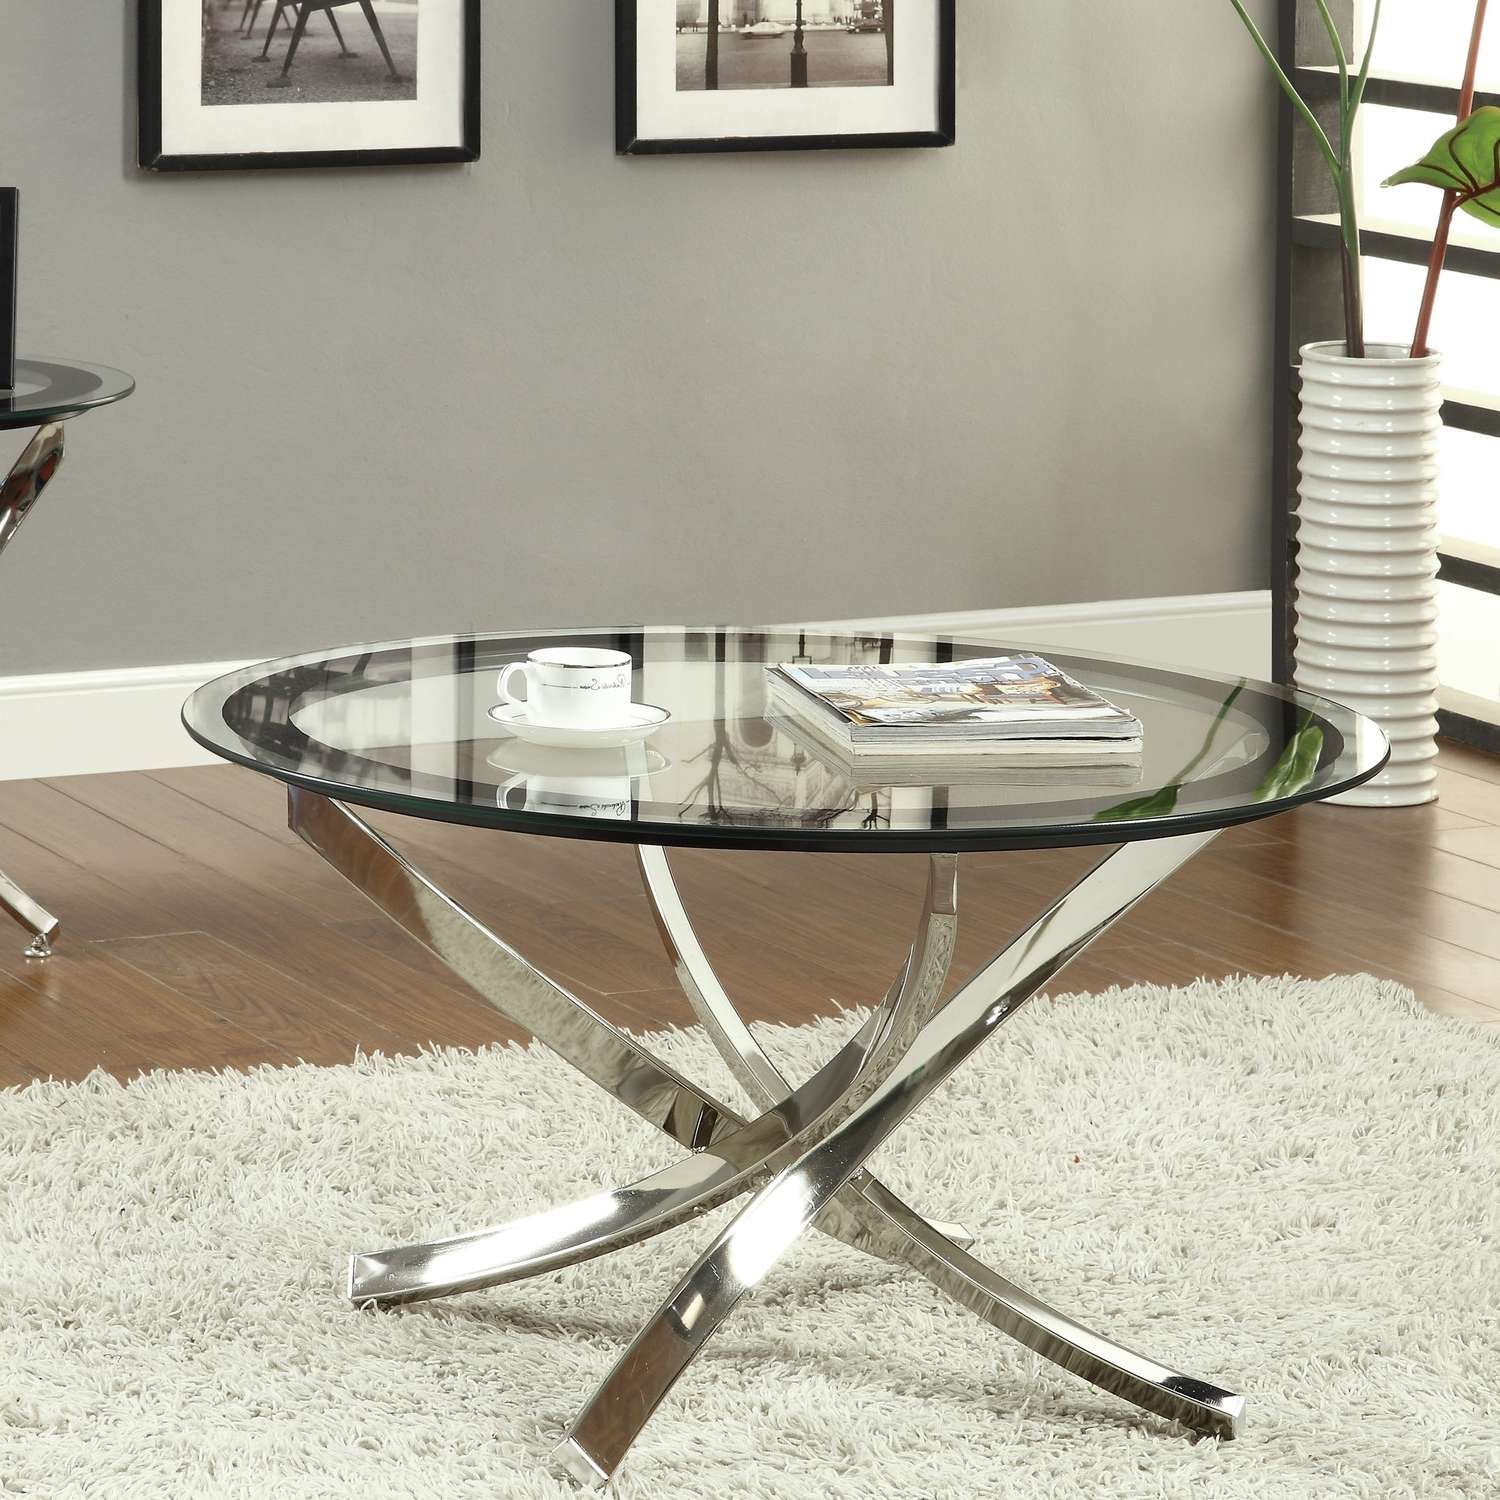 All Glass Pompidou Metal & Glass Coffee Table Large Table Regarding 2017 Coffee Tables Glass And Metal (View 2 of 20)